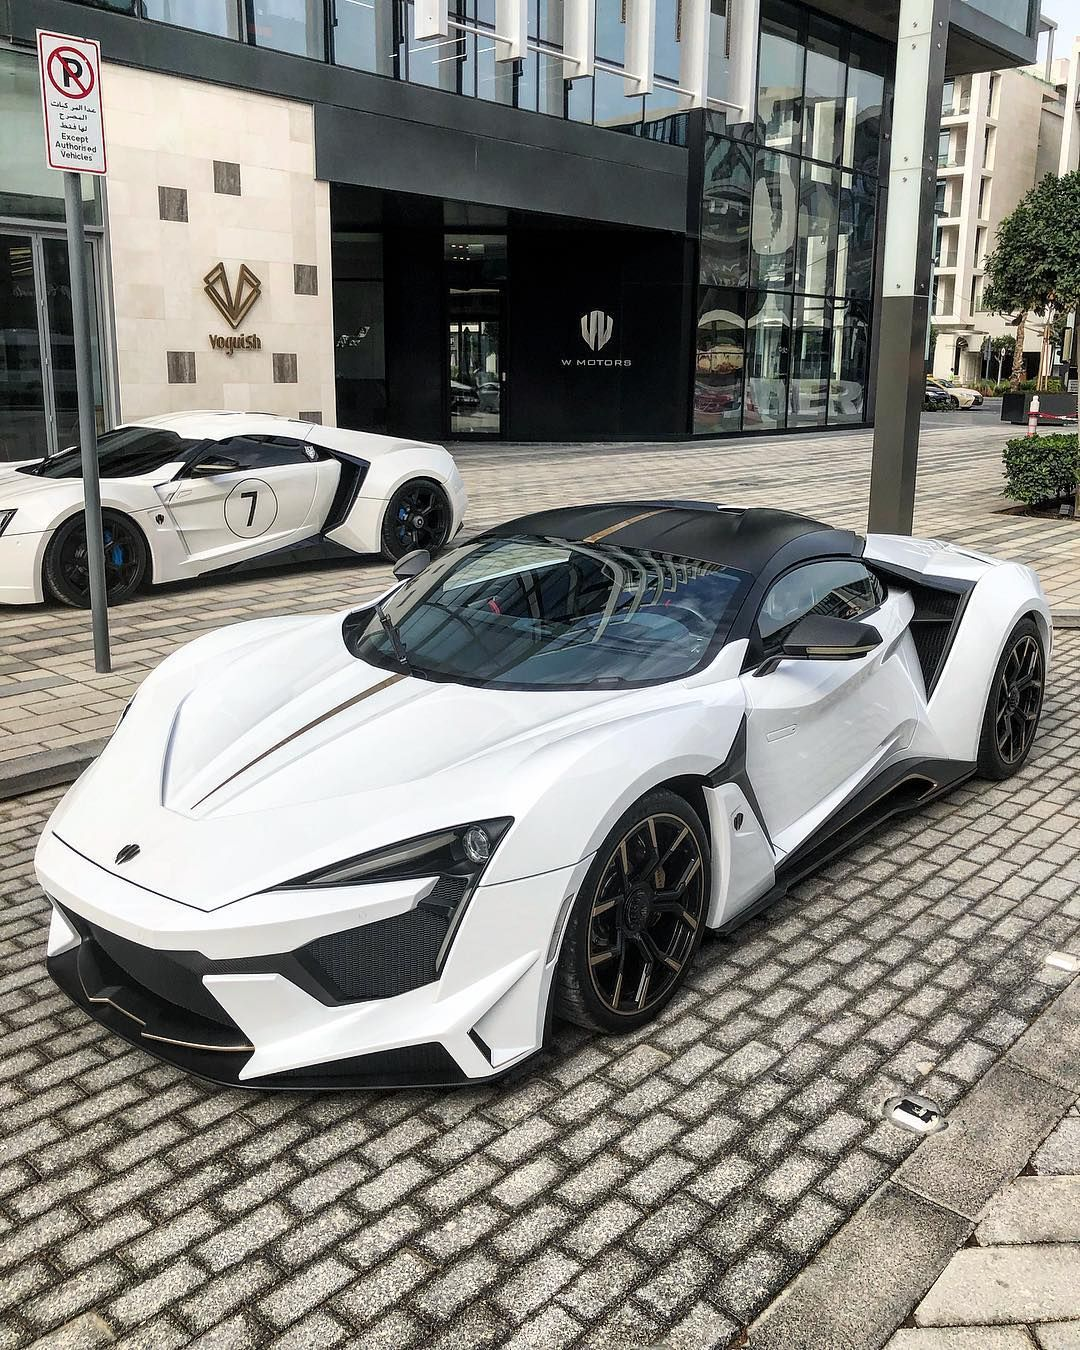 T H E W O L F P A C K Wmotors Fenyr Supersport Fenyrsupersport Lykan Lykanhypersport Blacklist Shot Bespoke Cars Sports Car Super Luxury Cars